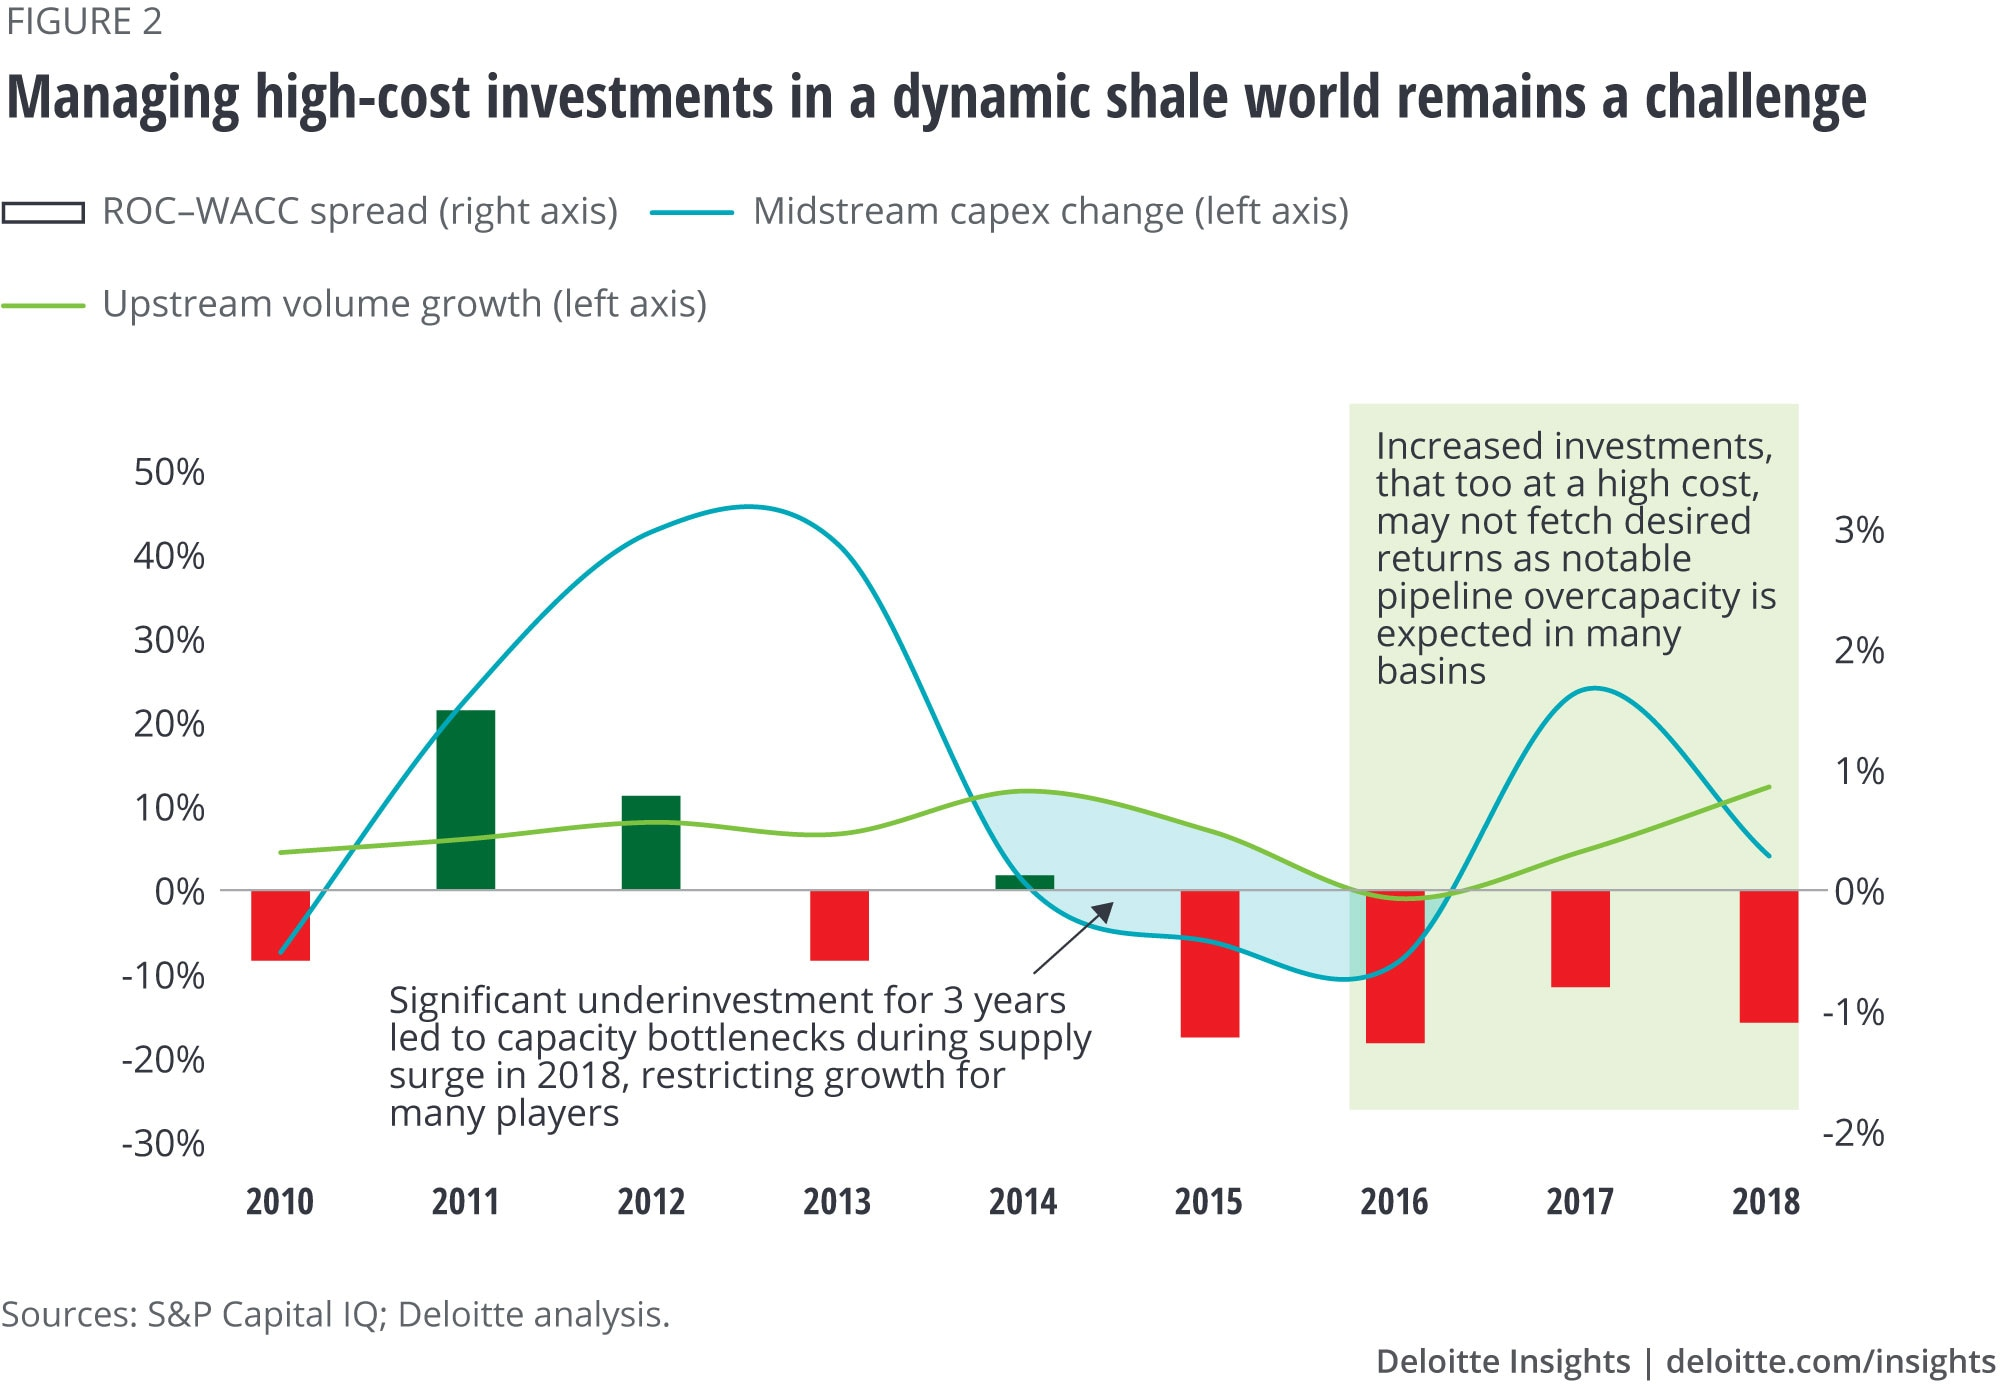 Managing high-cost investments in a dynamic shale world remains a challenge